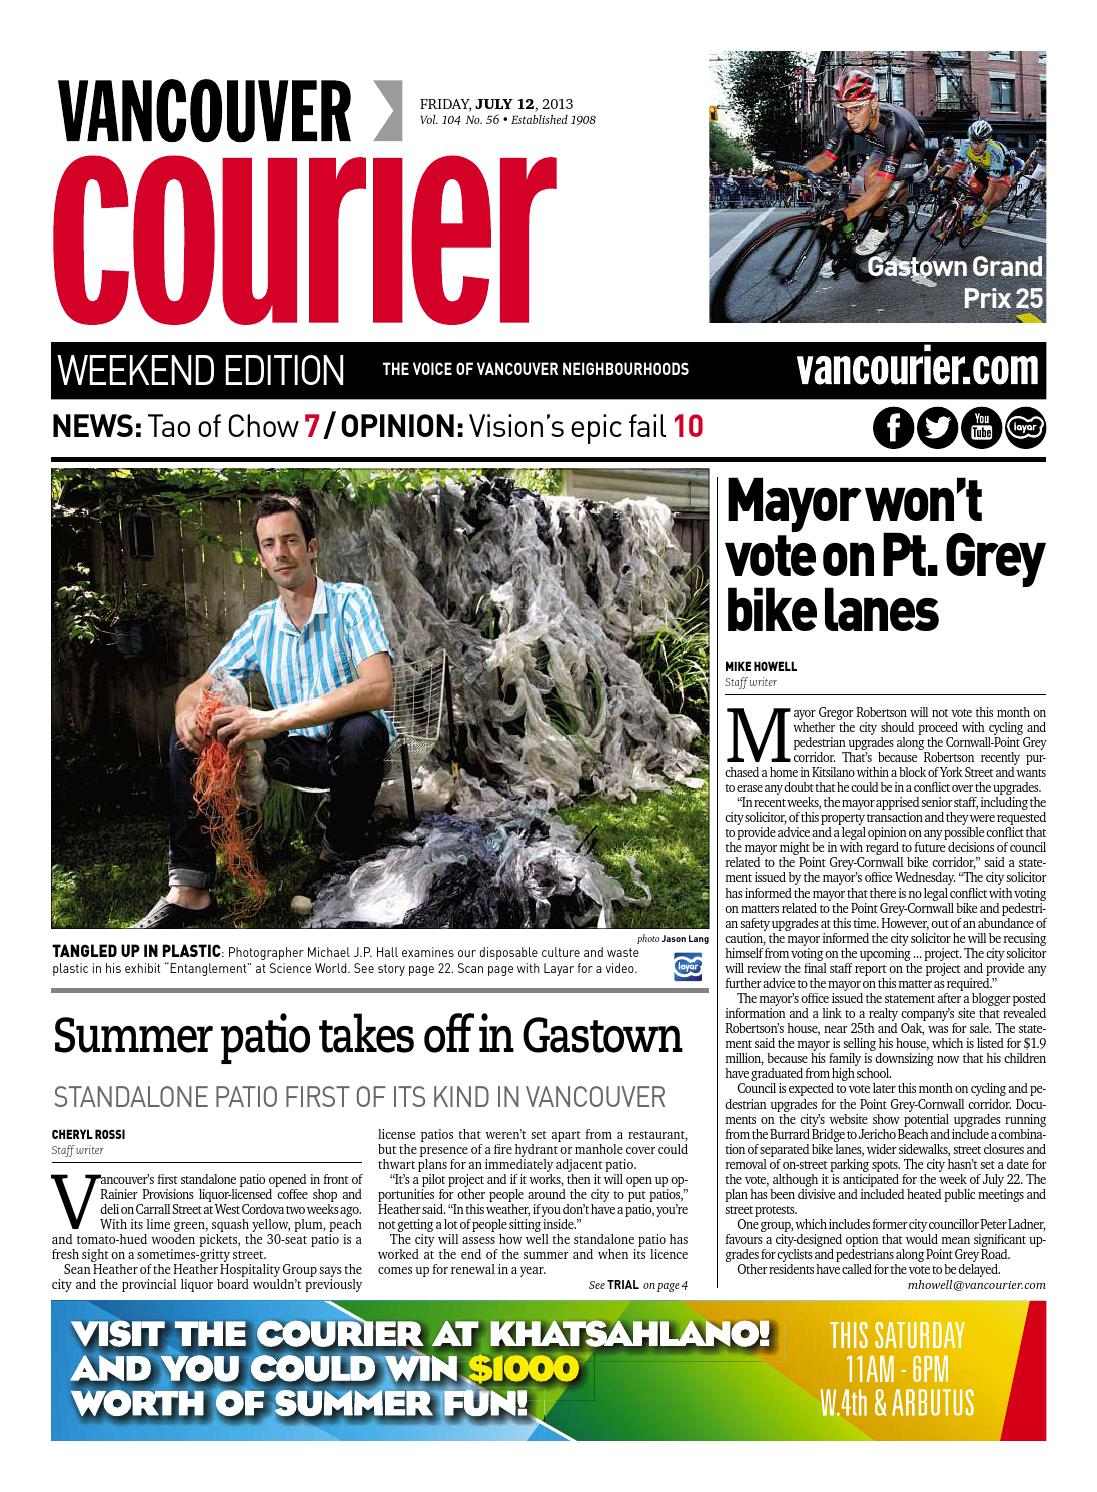 Vancouver Courier August 12 2013 by Vancouver Courier - issuu